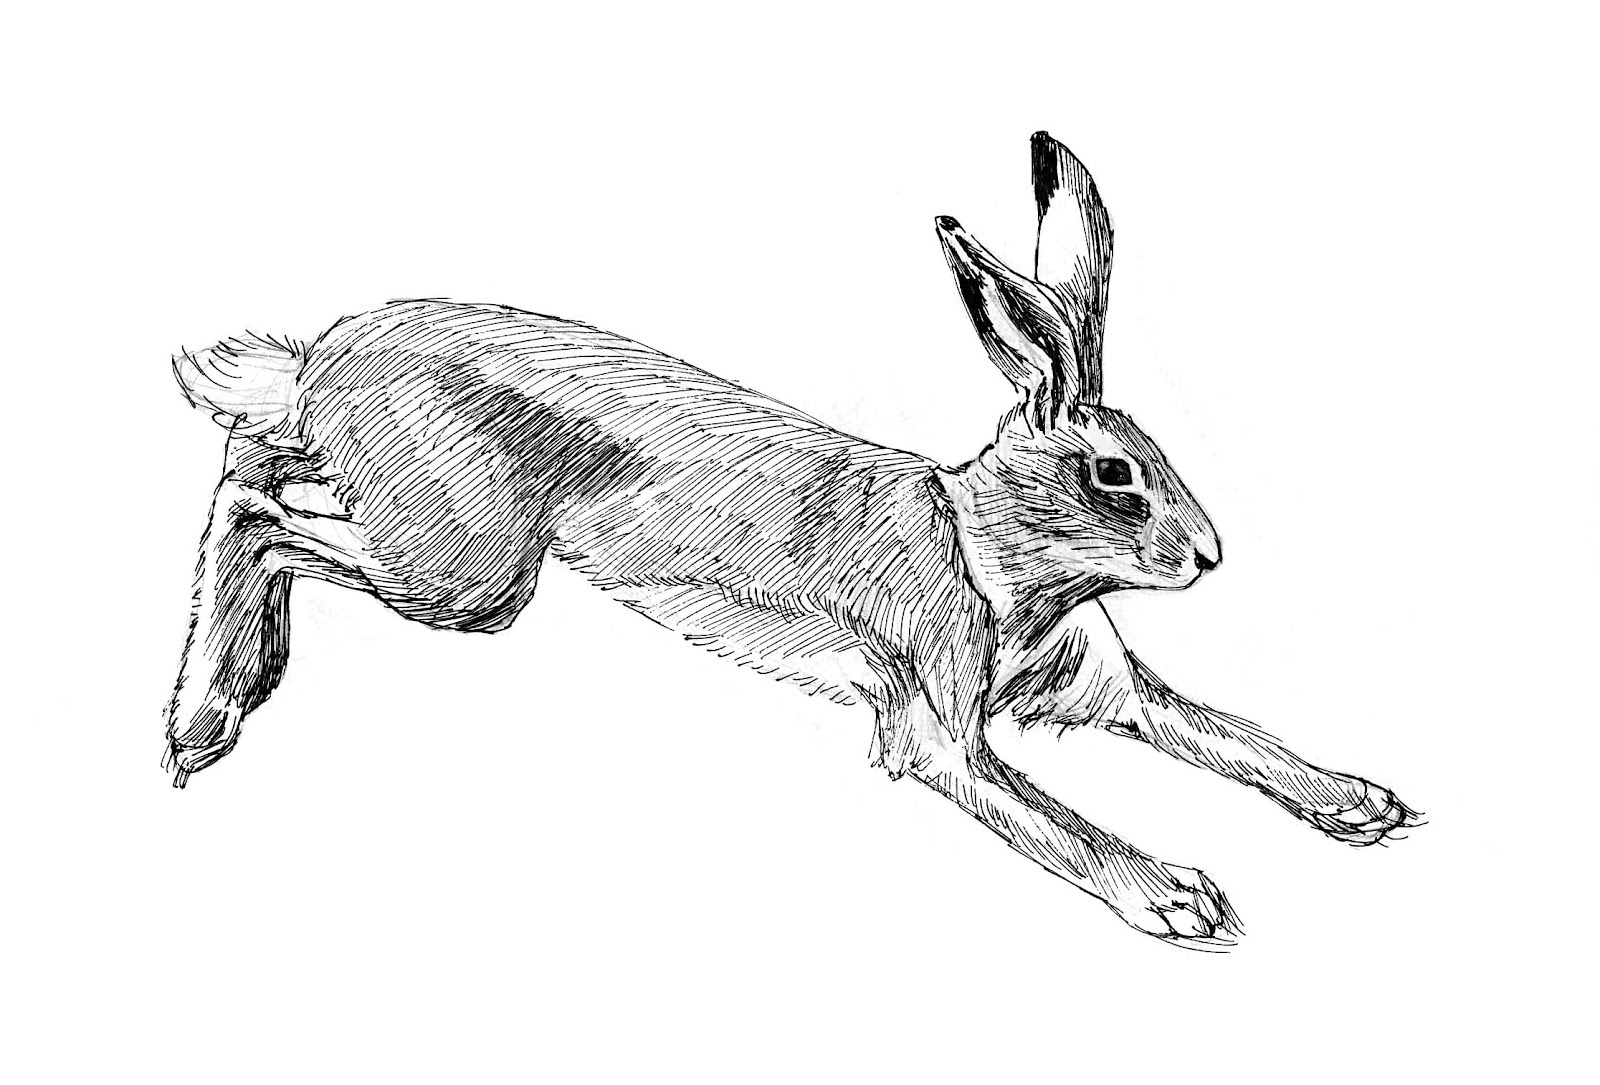 Hare running drawing - photo#1